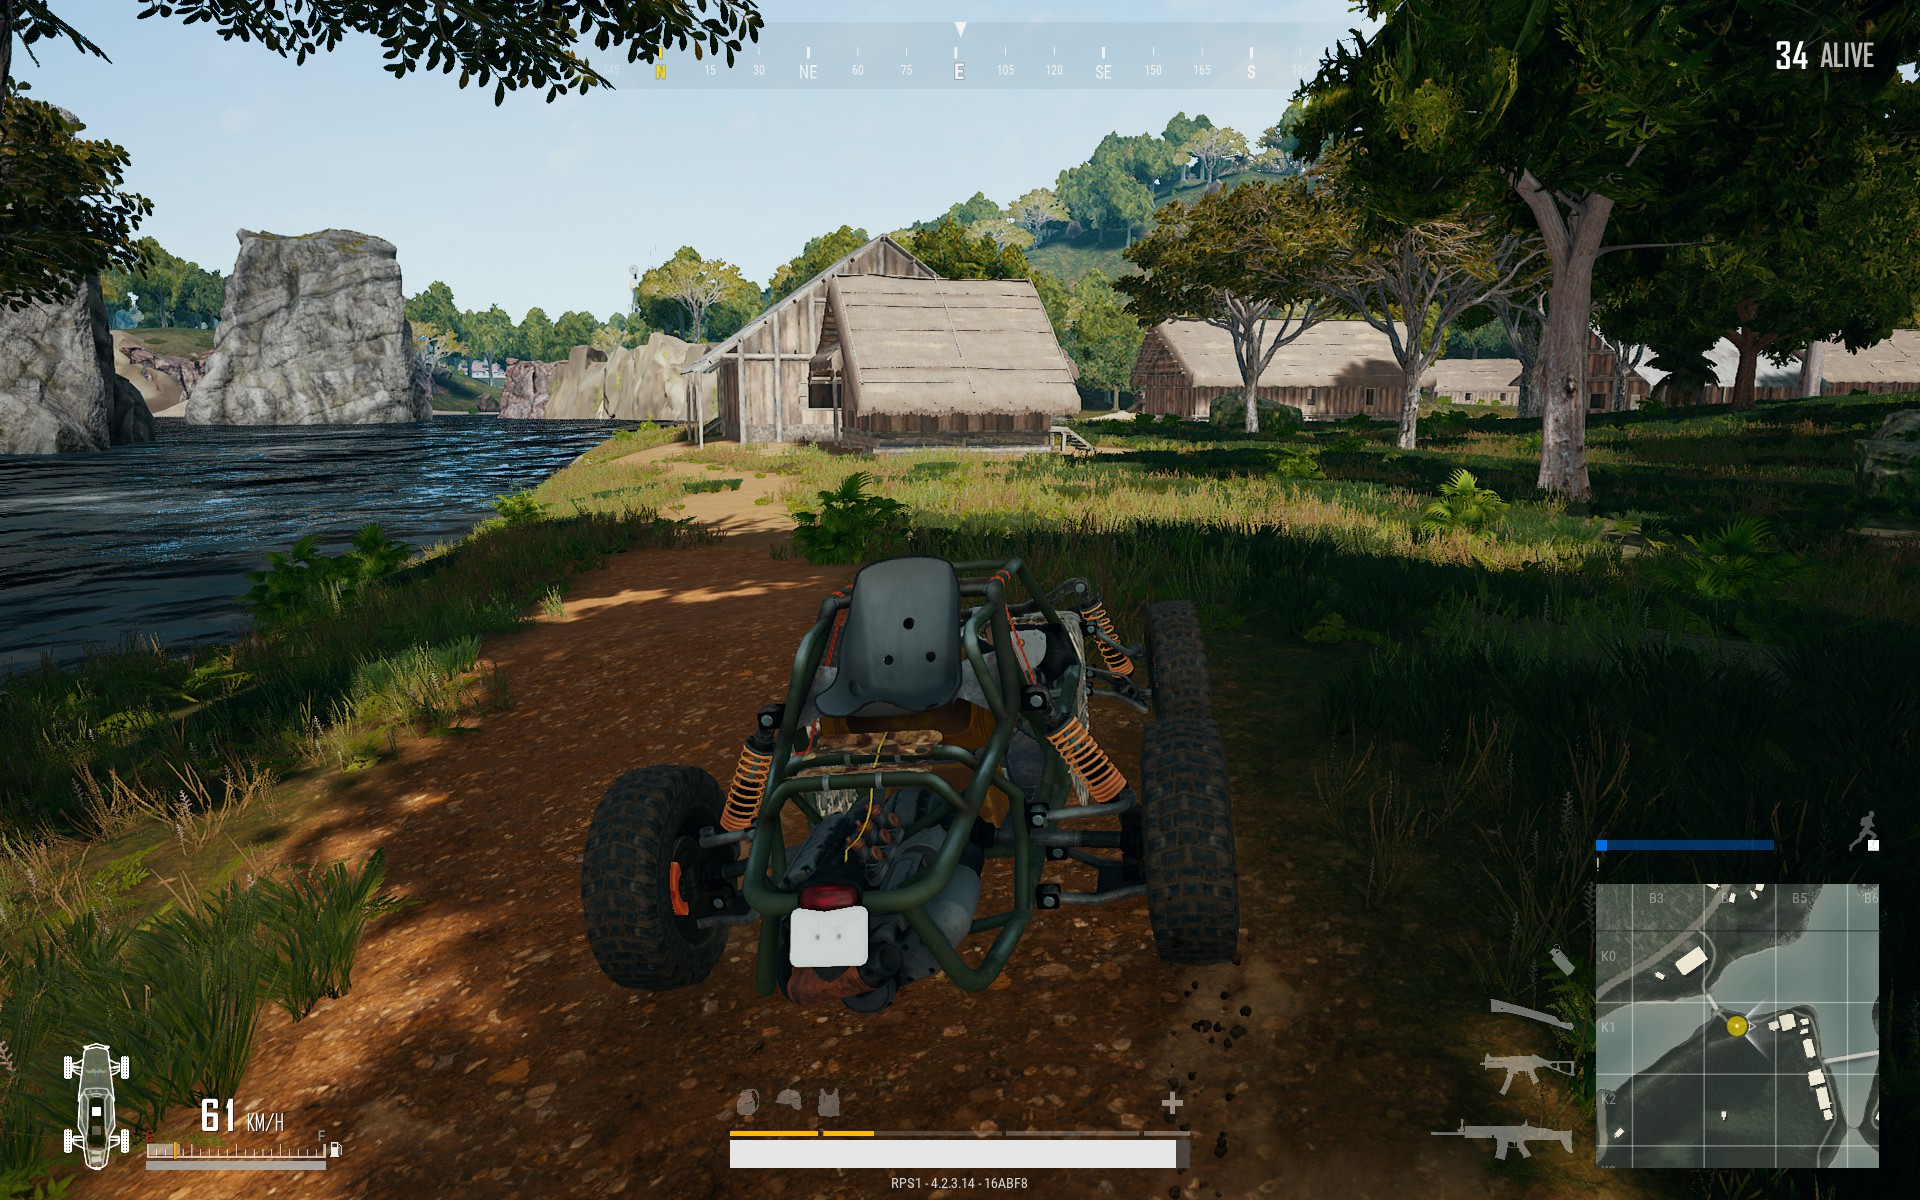 Player driving in dune buggy near houses and water